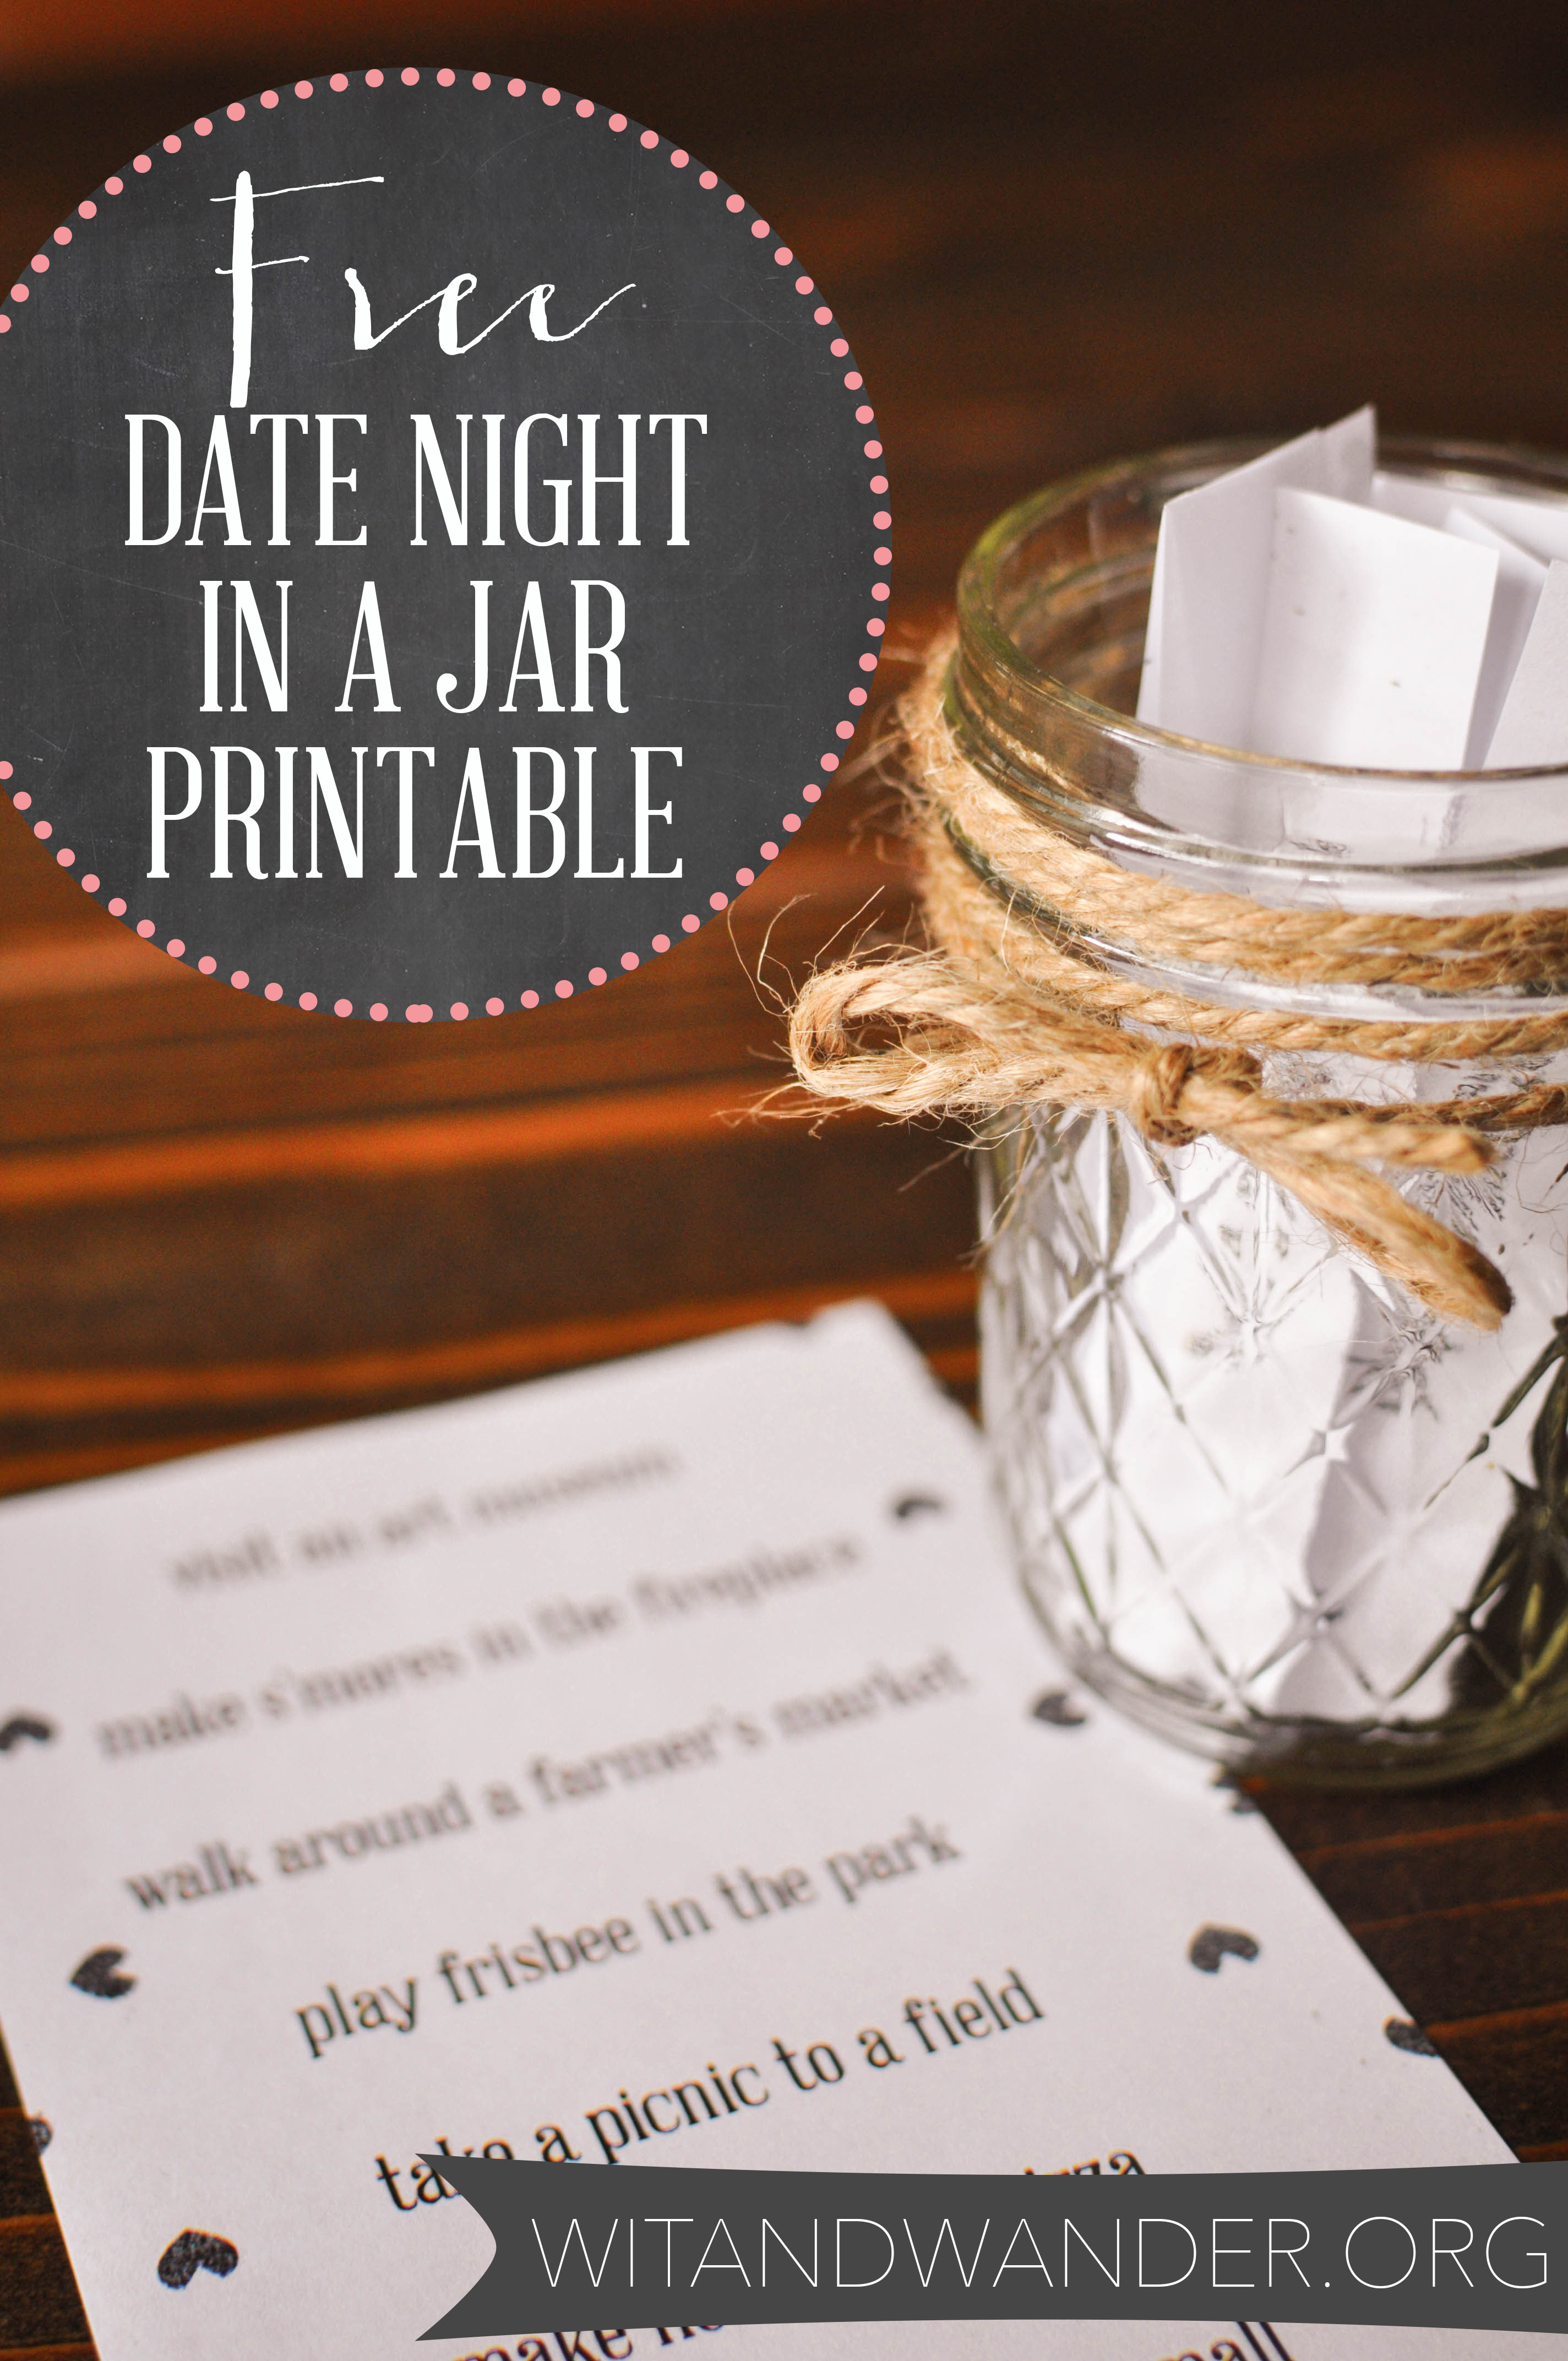 Date Night in a Jar Printable 4 - Wit and Wander